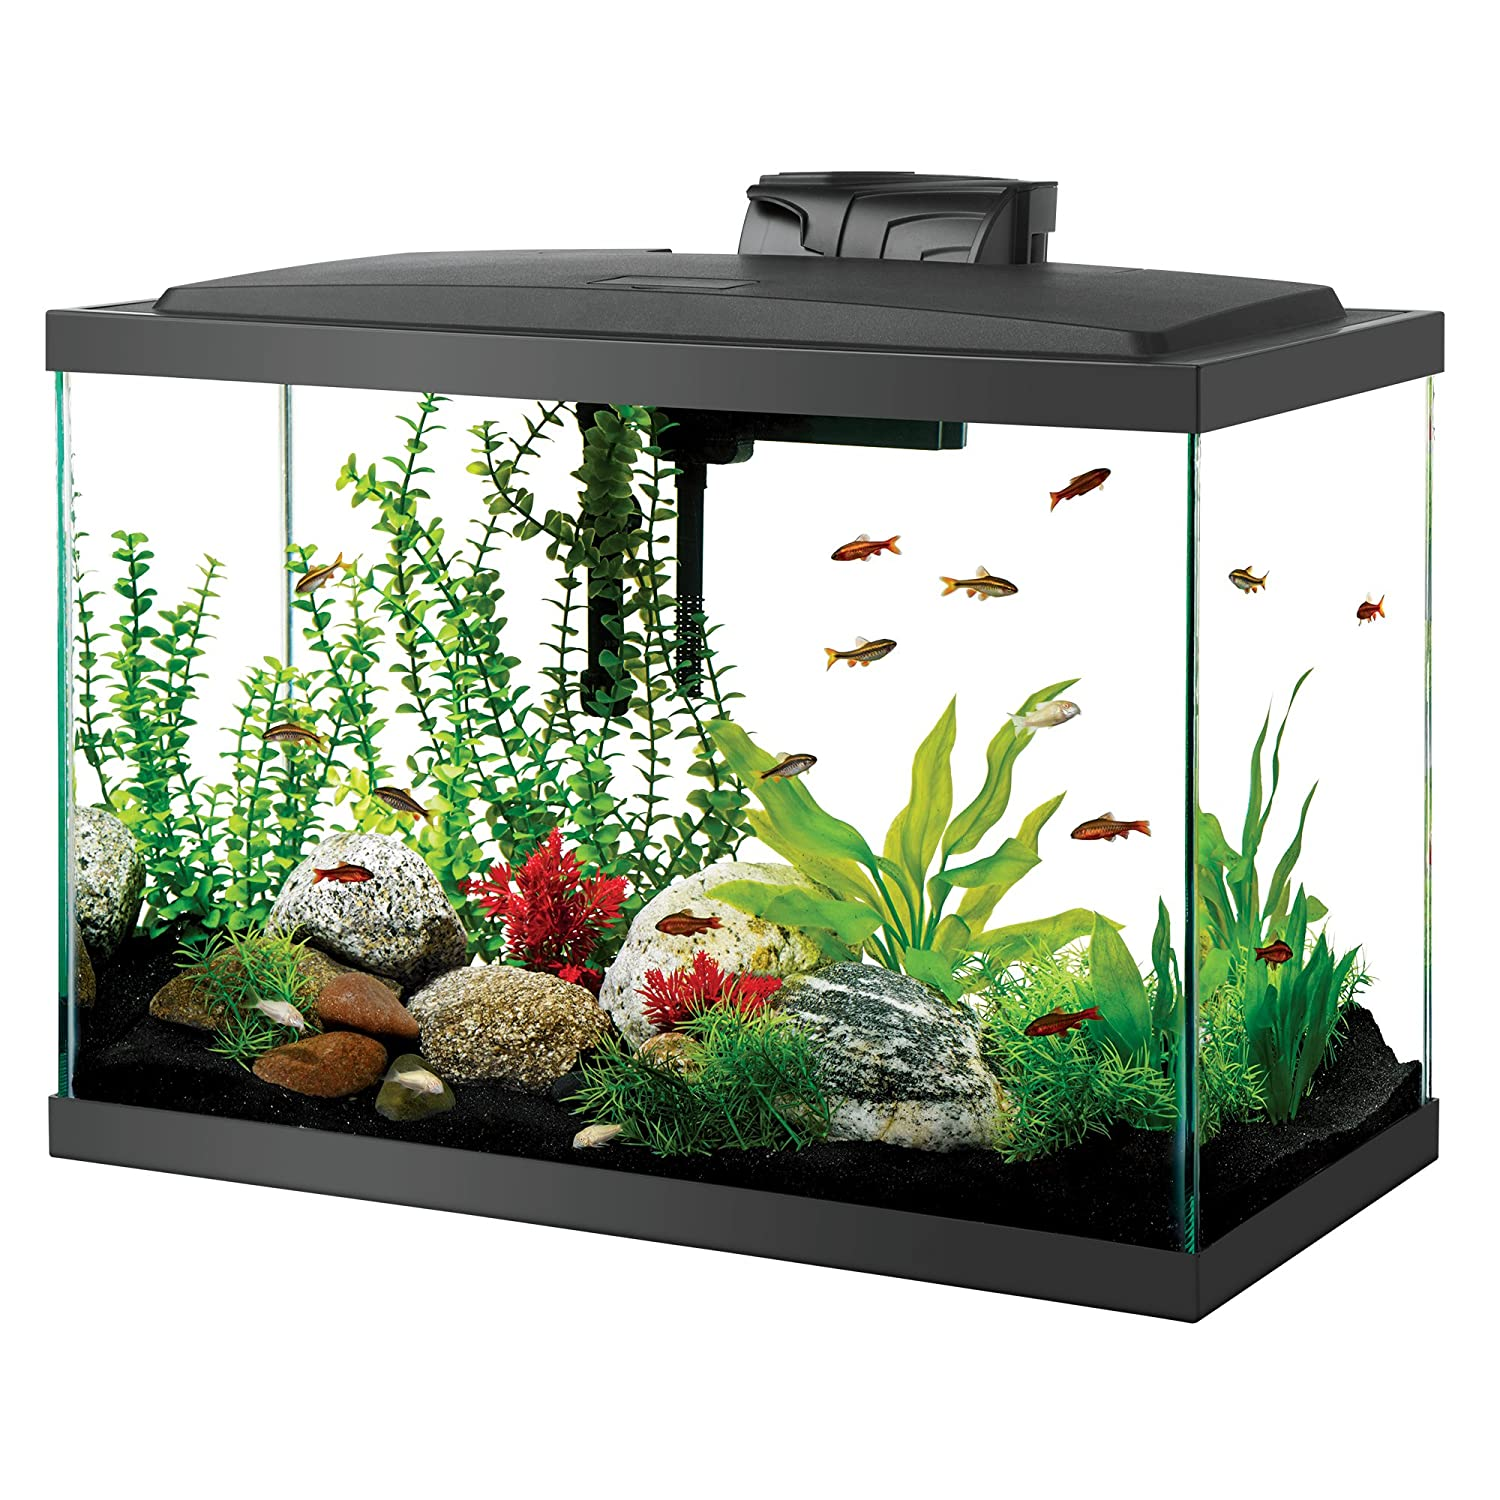 Top 7 best 20 gallon aquariums in 2018 market list for 20 gallon fish tank kit